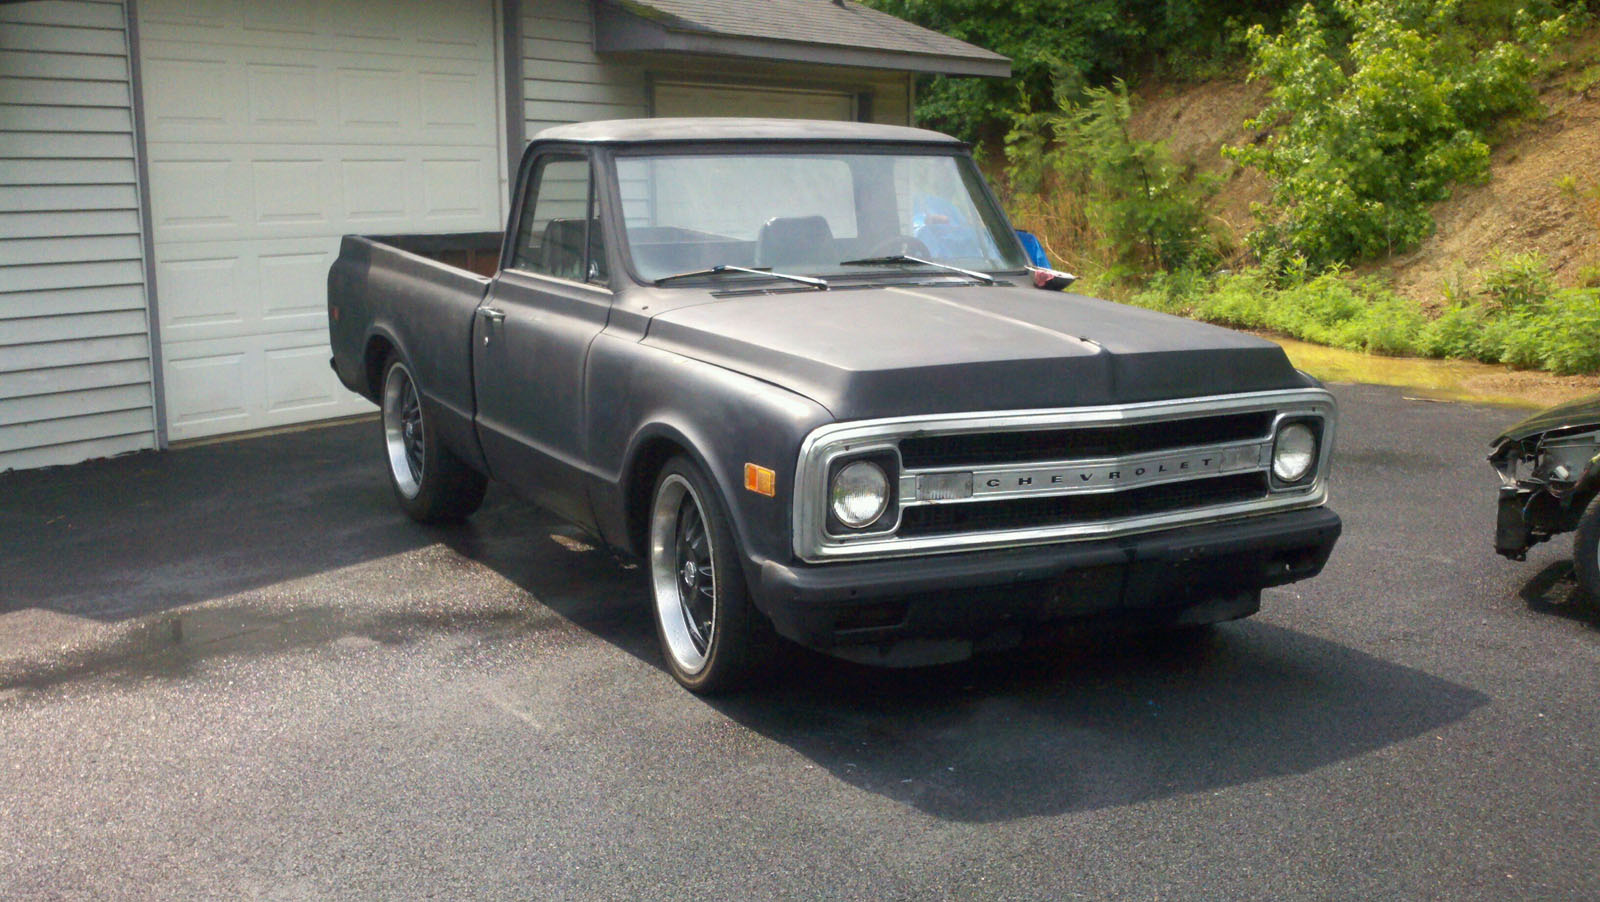 Truck c 10 chevy truck : 1970 Chevrolet C10/K10 For Sale | Tennessee